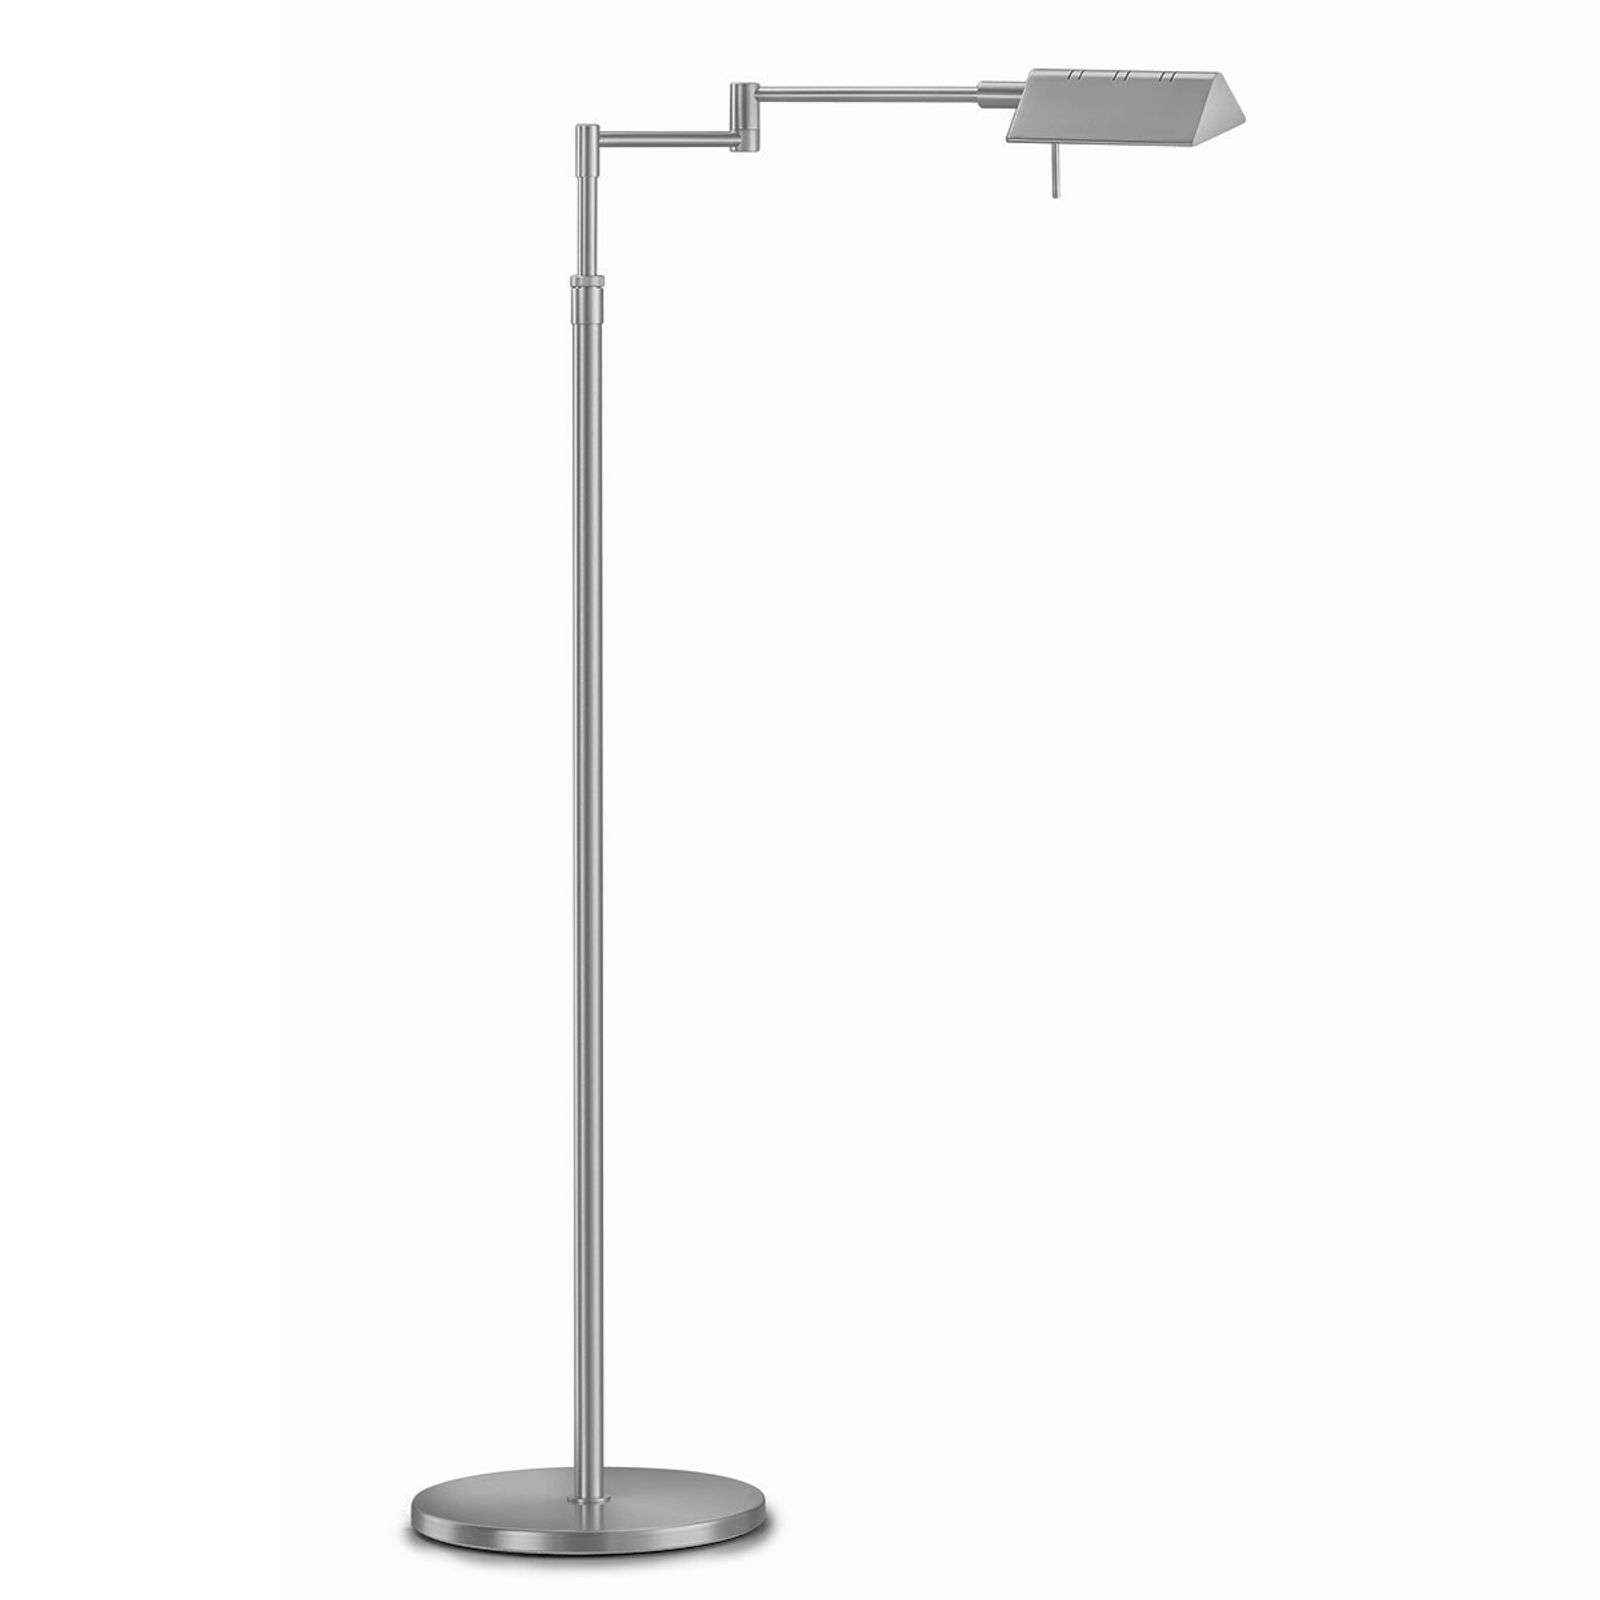 Lampadaire LED réglable Danuta, nickel mat